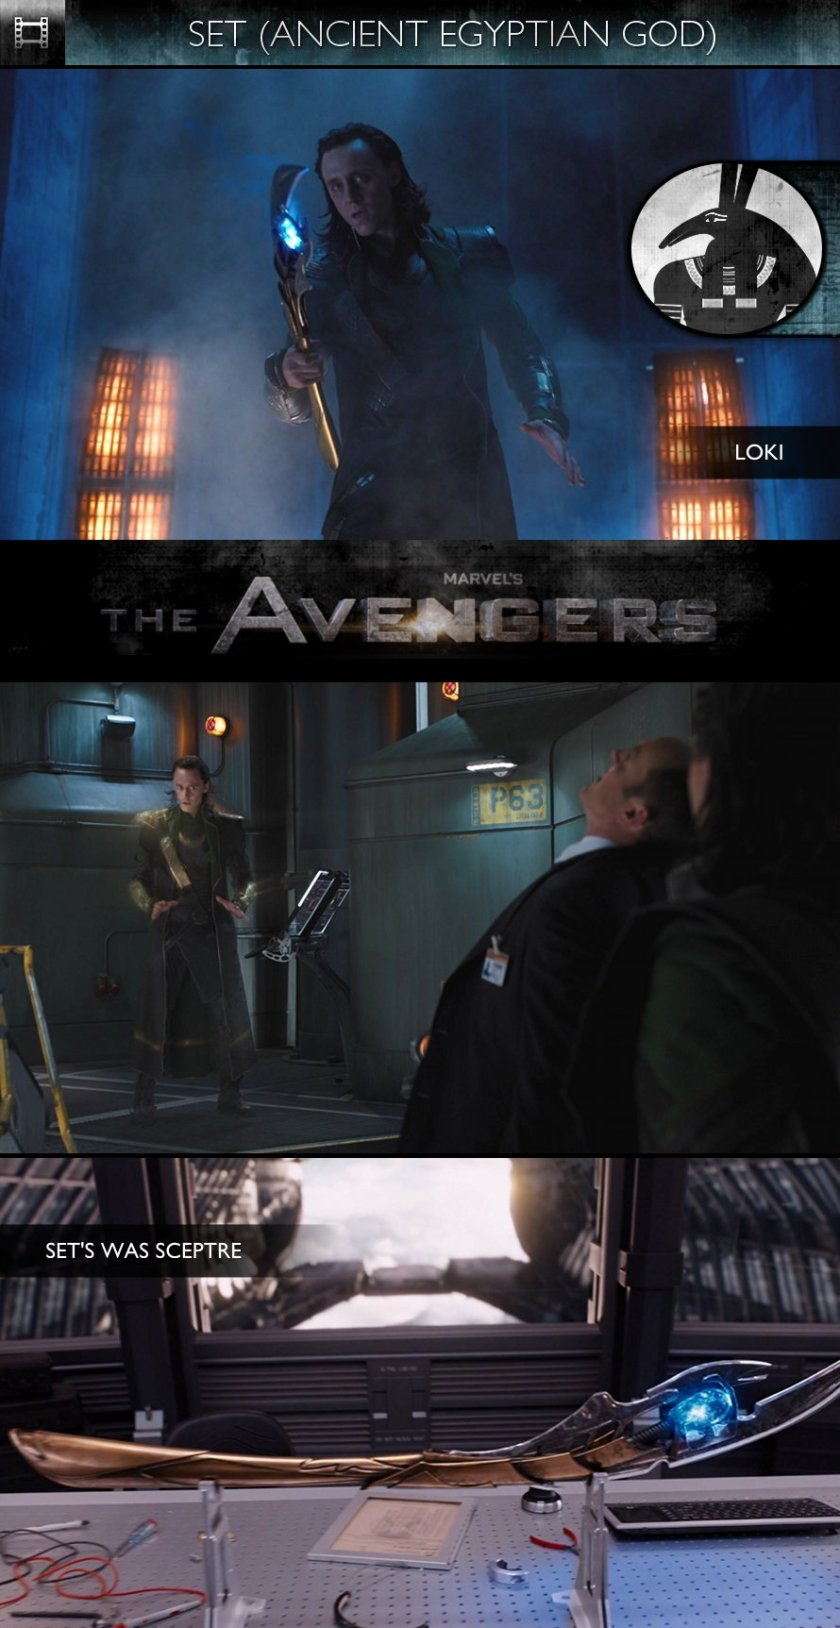 SET - The Avengers (2012) - Loki & Was Sceptre